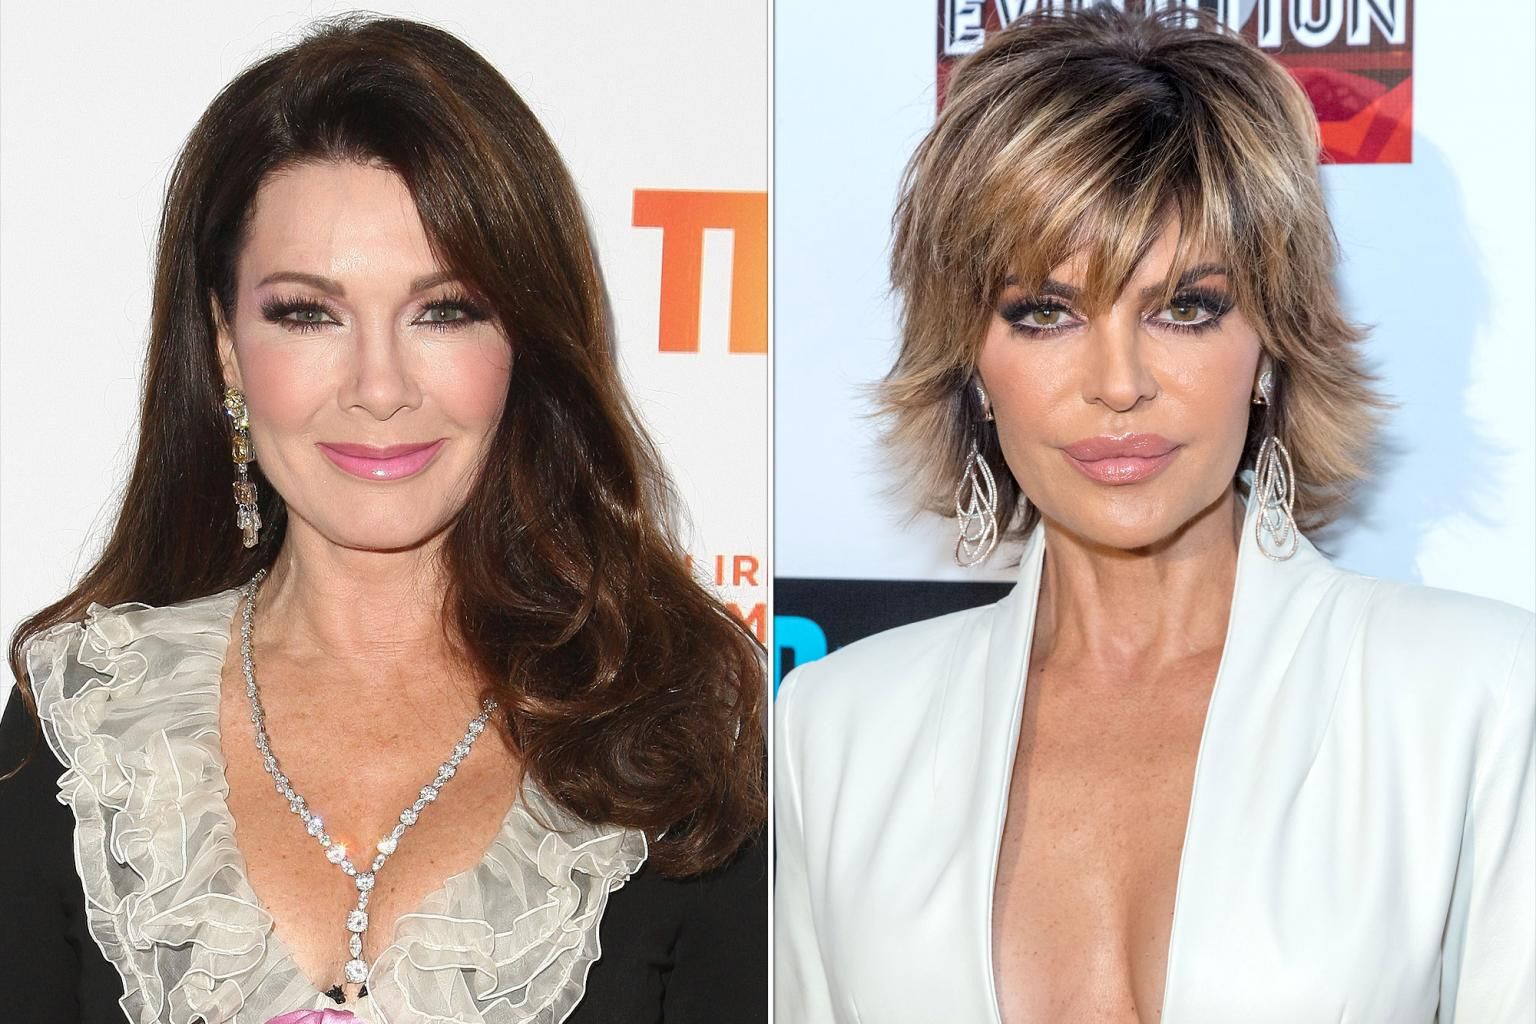 Lisa Rinna Apologizes to Lisa Vanderpump After Bitter Feud! Can the Rhobh Rivals Move On?